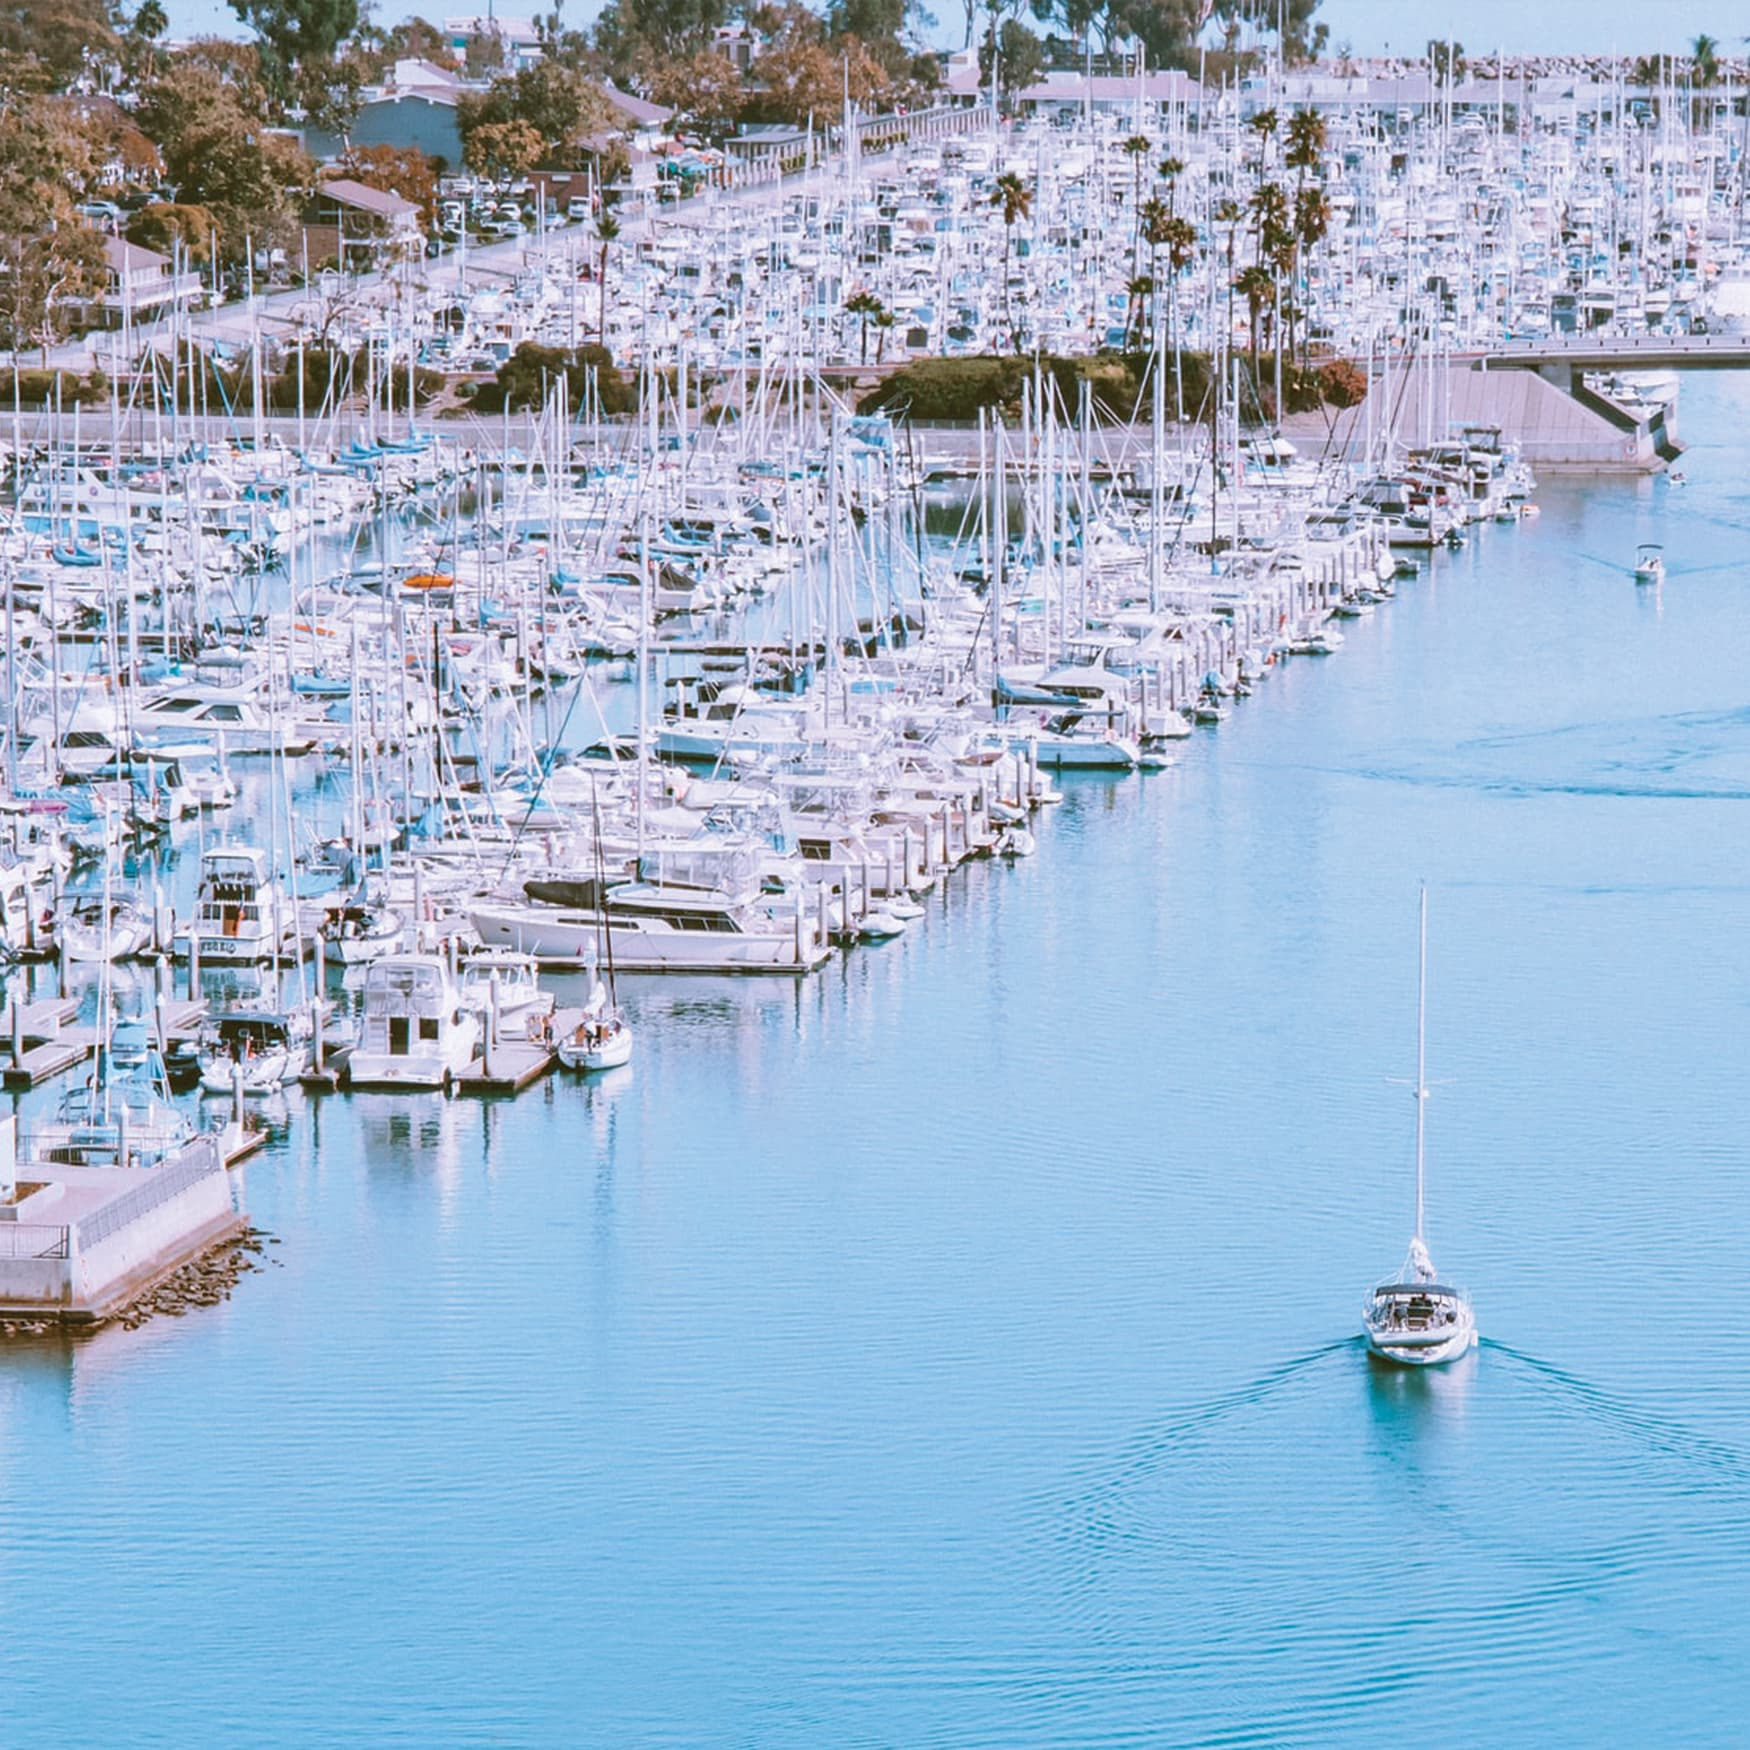 A boat sailing through the main lane at Dana Point Harbor with the current waterfront retail and restaurants in the background.